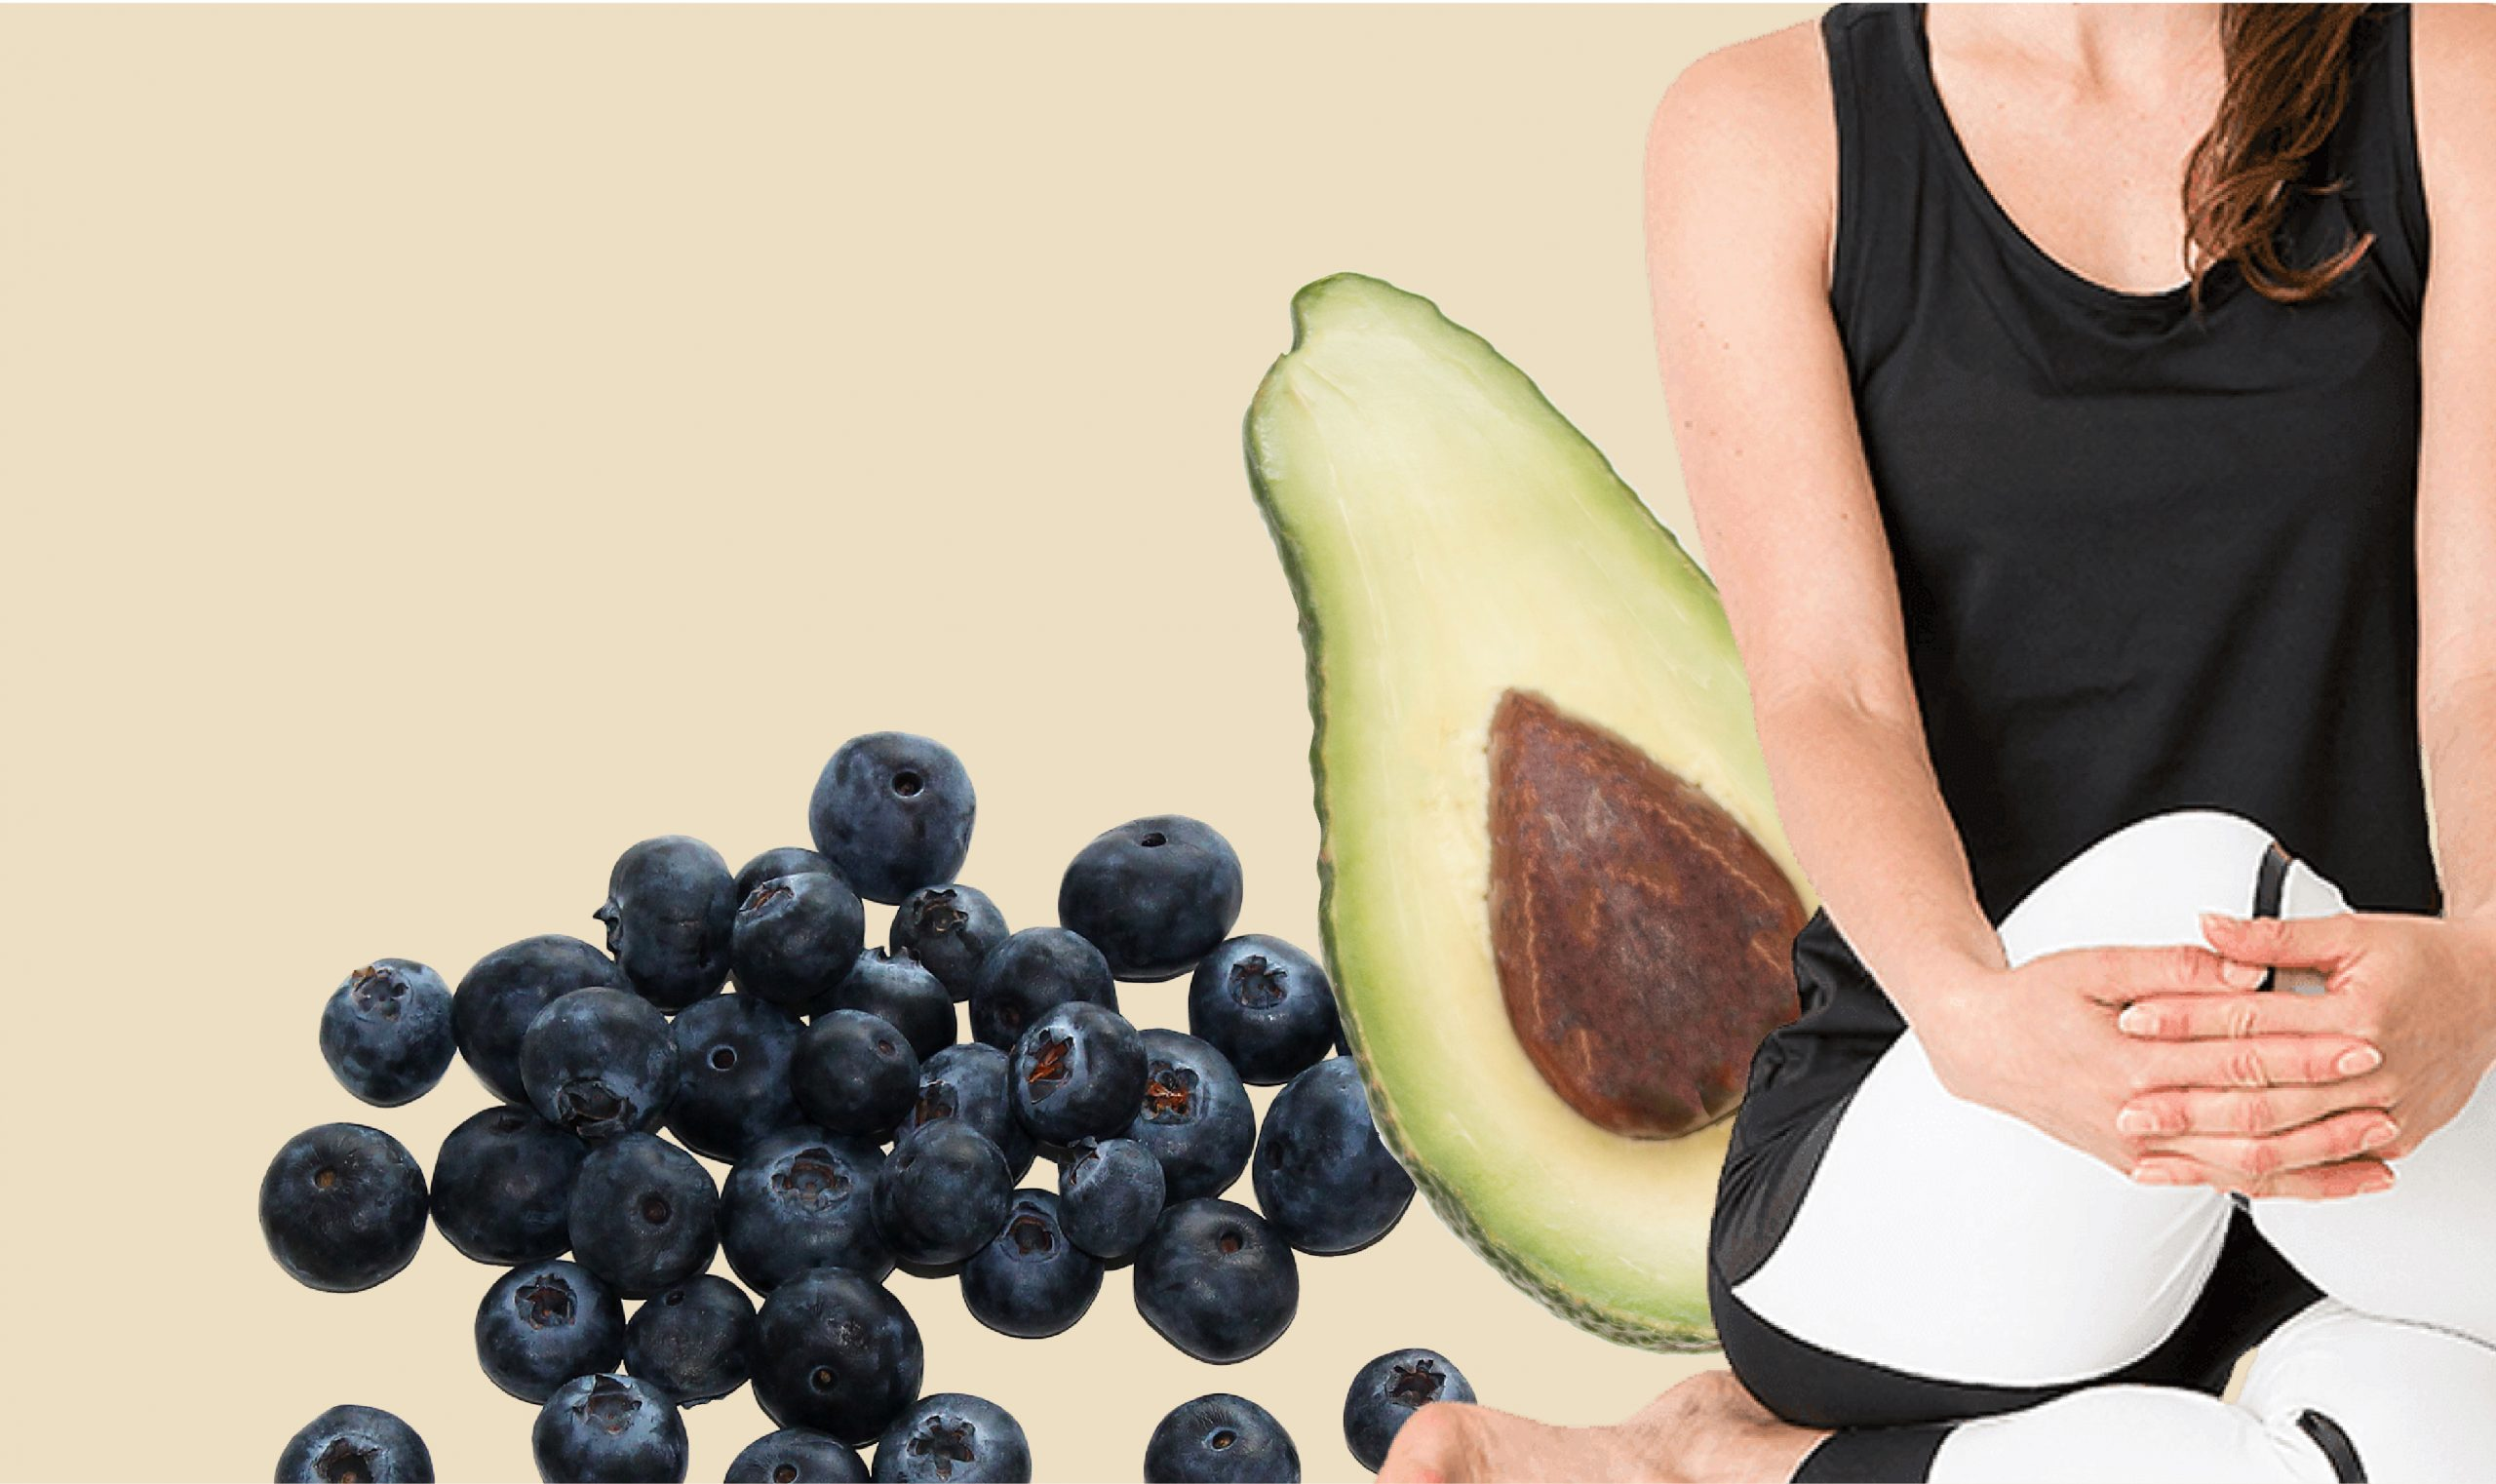 A woman, an avocado and blueberries